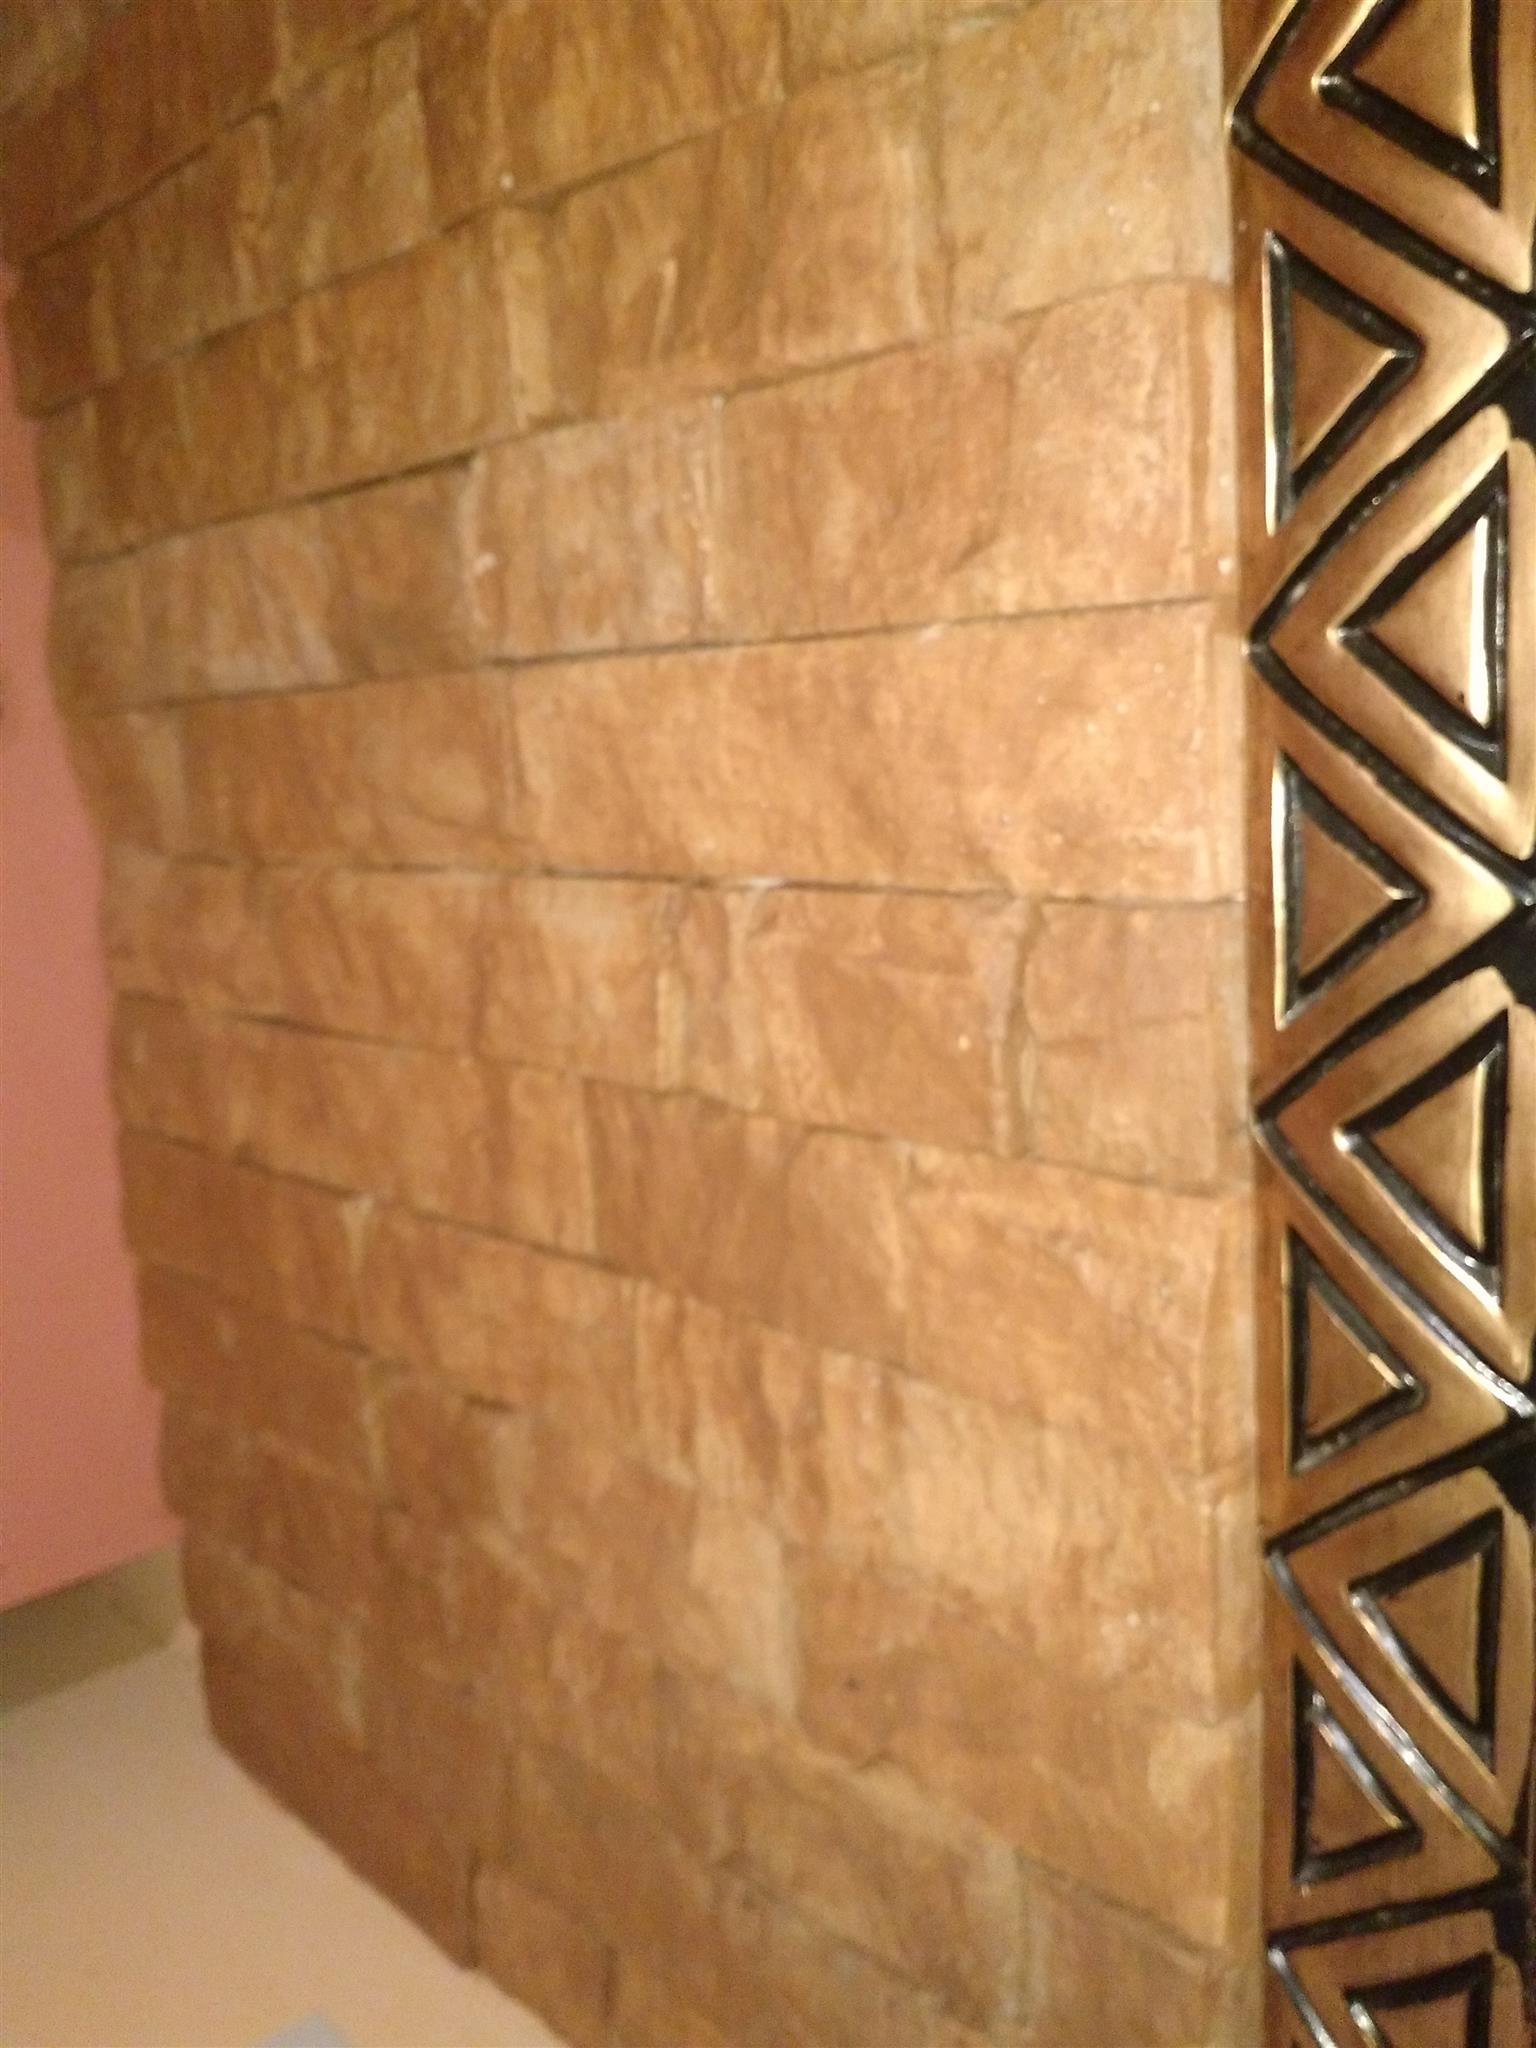 Manufacturing Floor Tiles and Wall Cladding